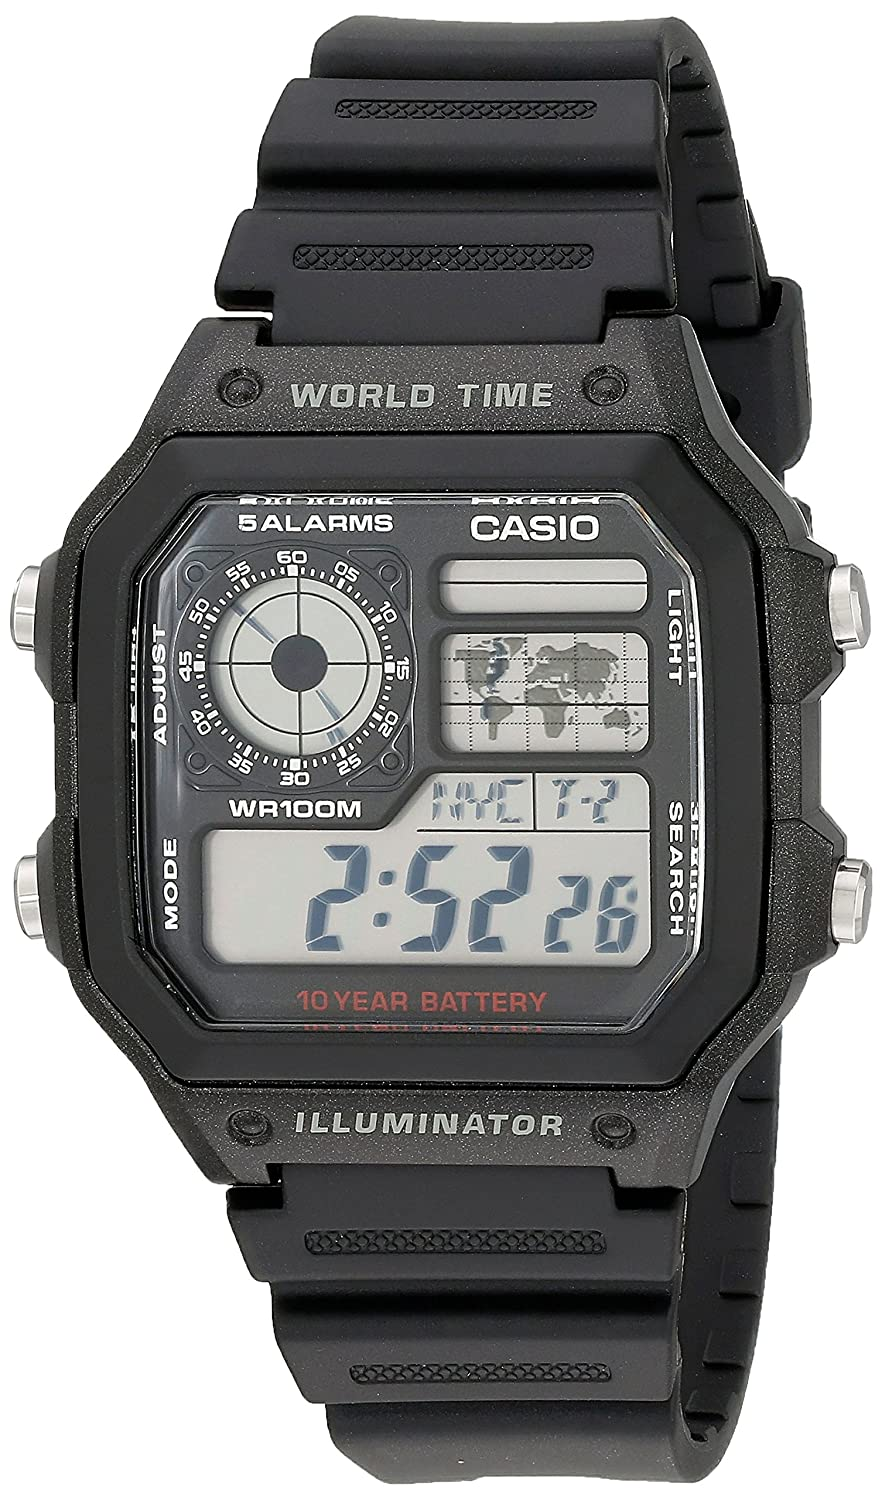 08593fce1c6 Amazon.com  Casio Men s AE1200WH-1A World Time Multifunction Watch  Casio   Watches